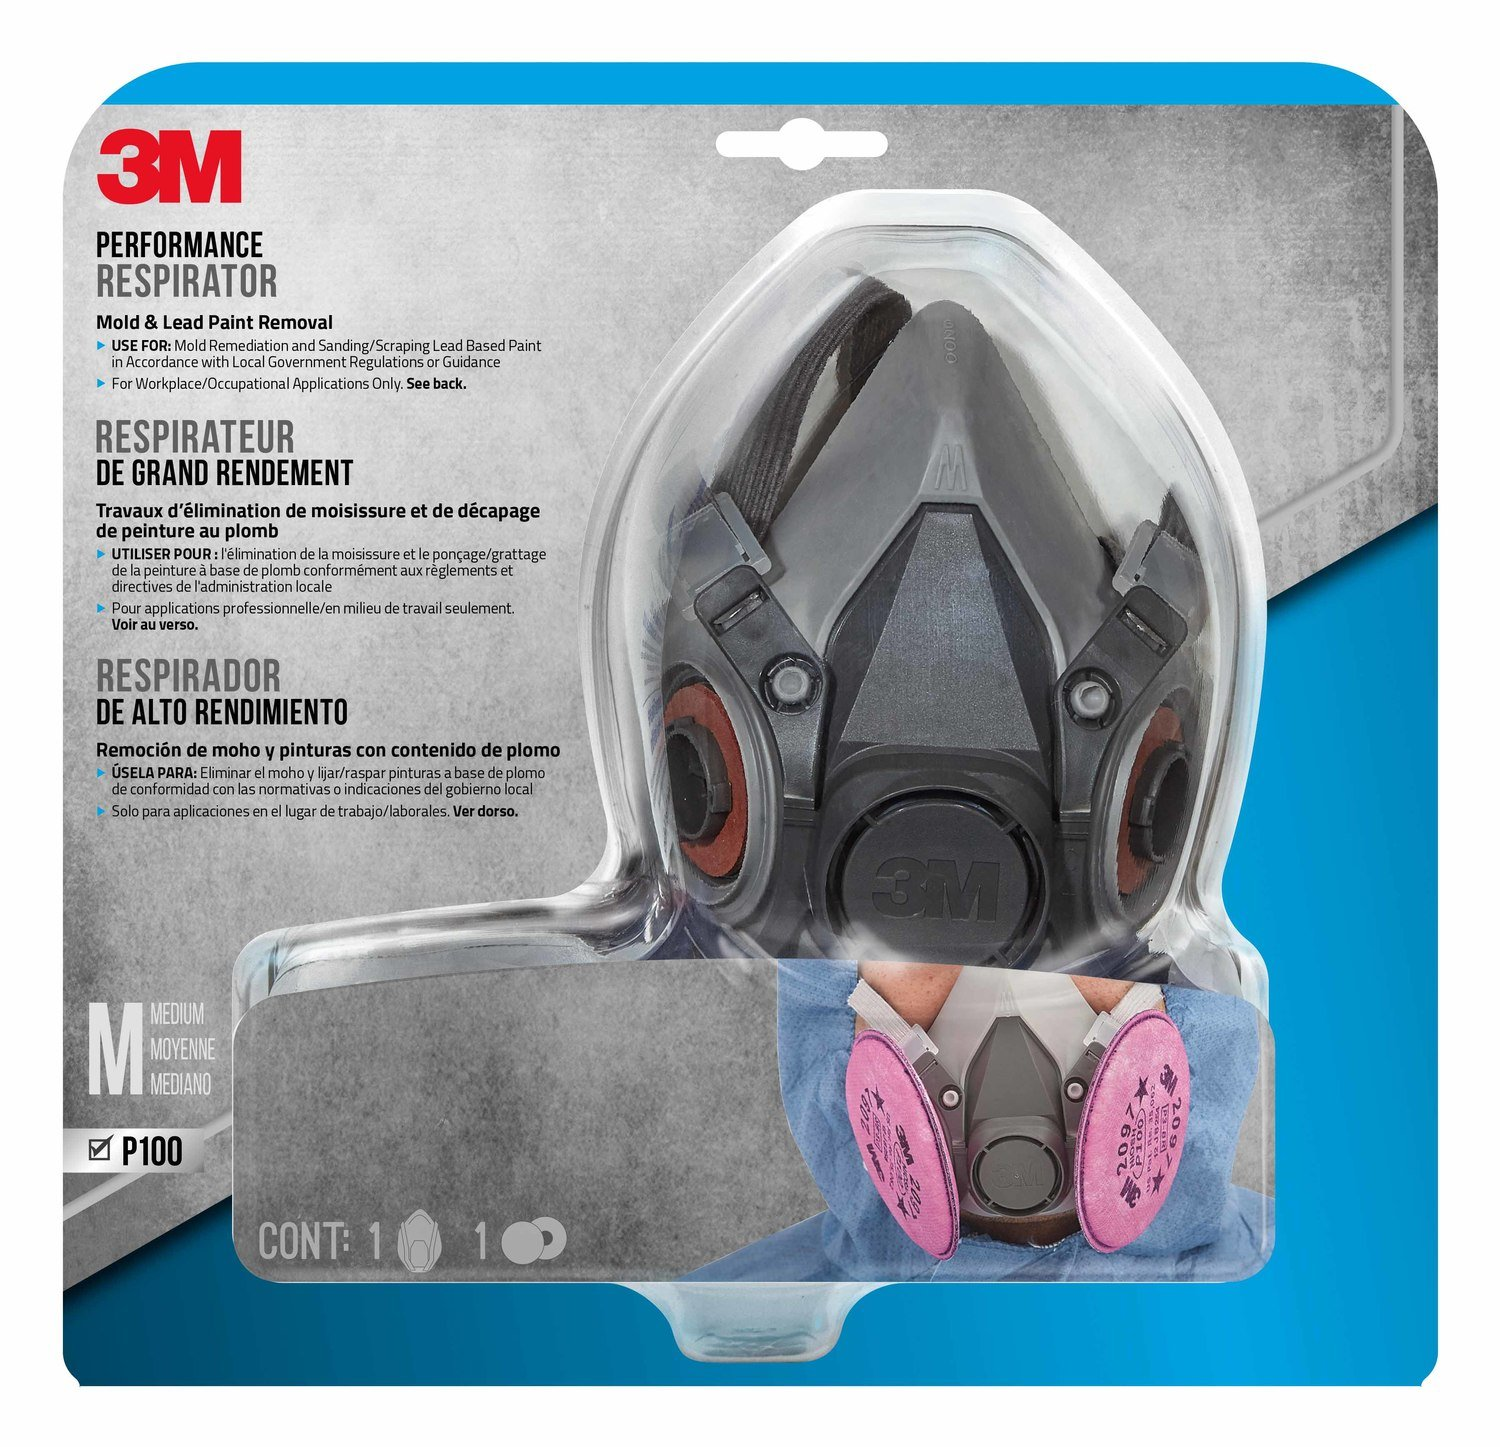 3M Mold and Lead Paint Removal Respirator, Medium - 6297PA1-A by 3M Safety